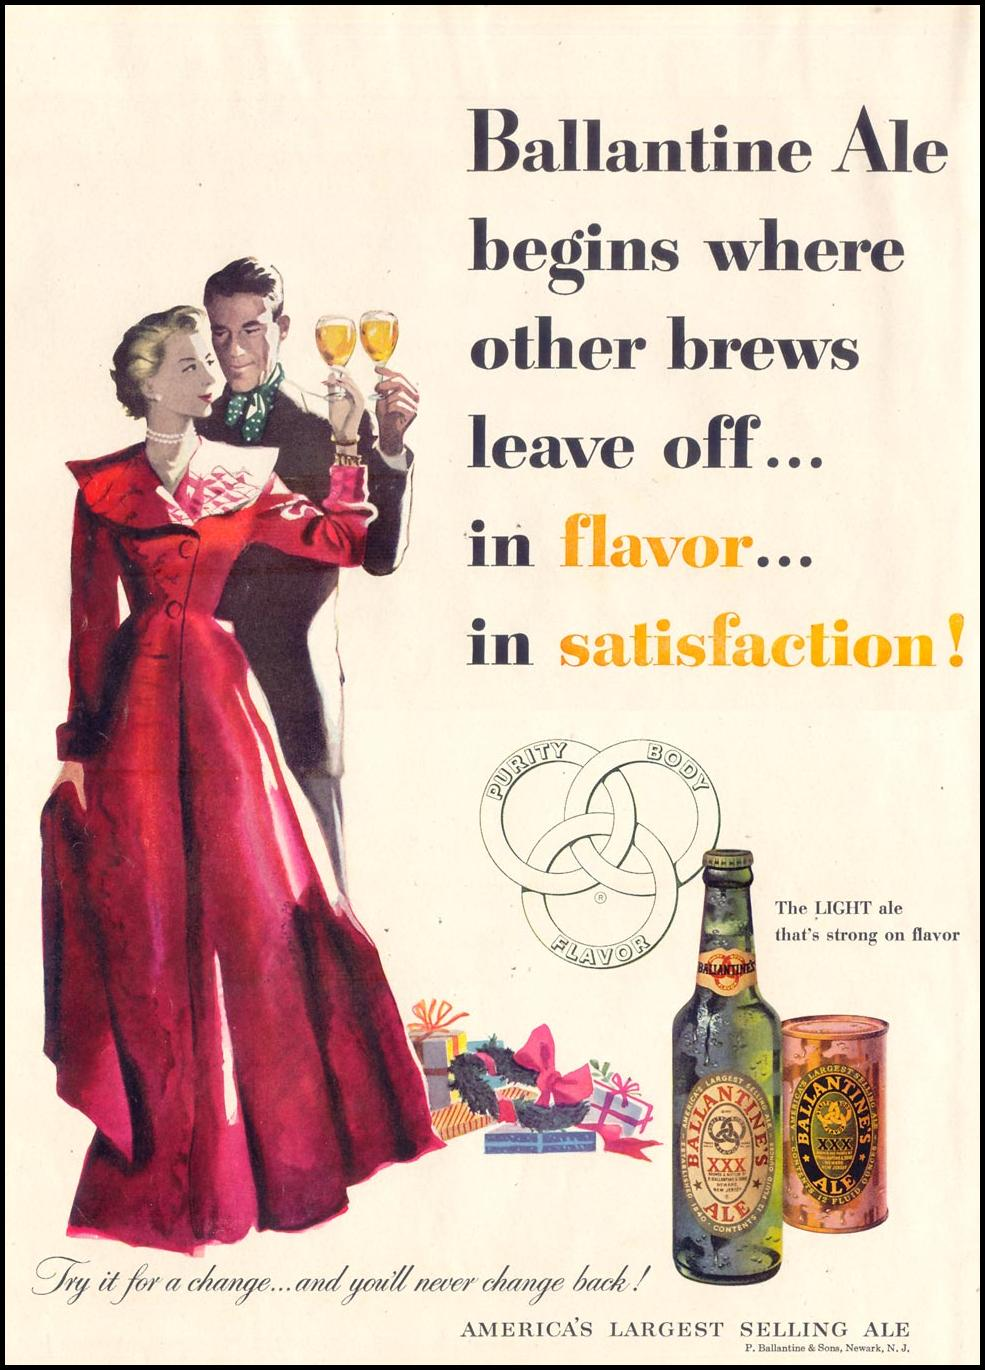 BALLANTINE ALE